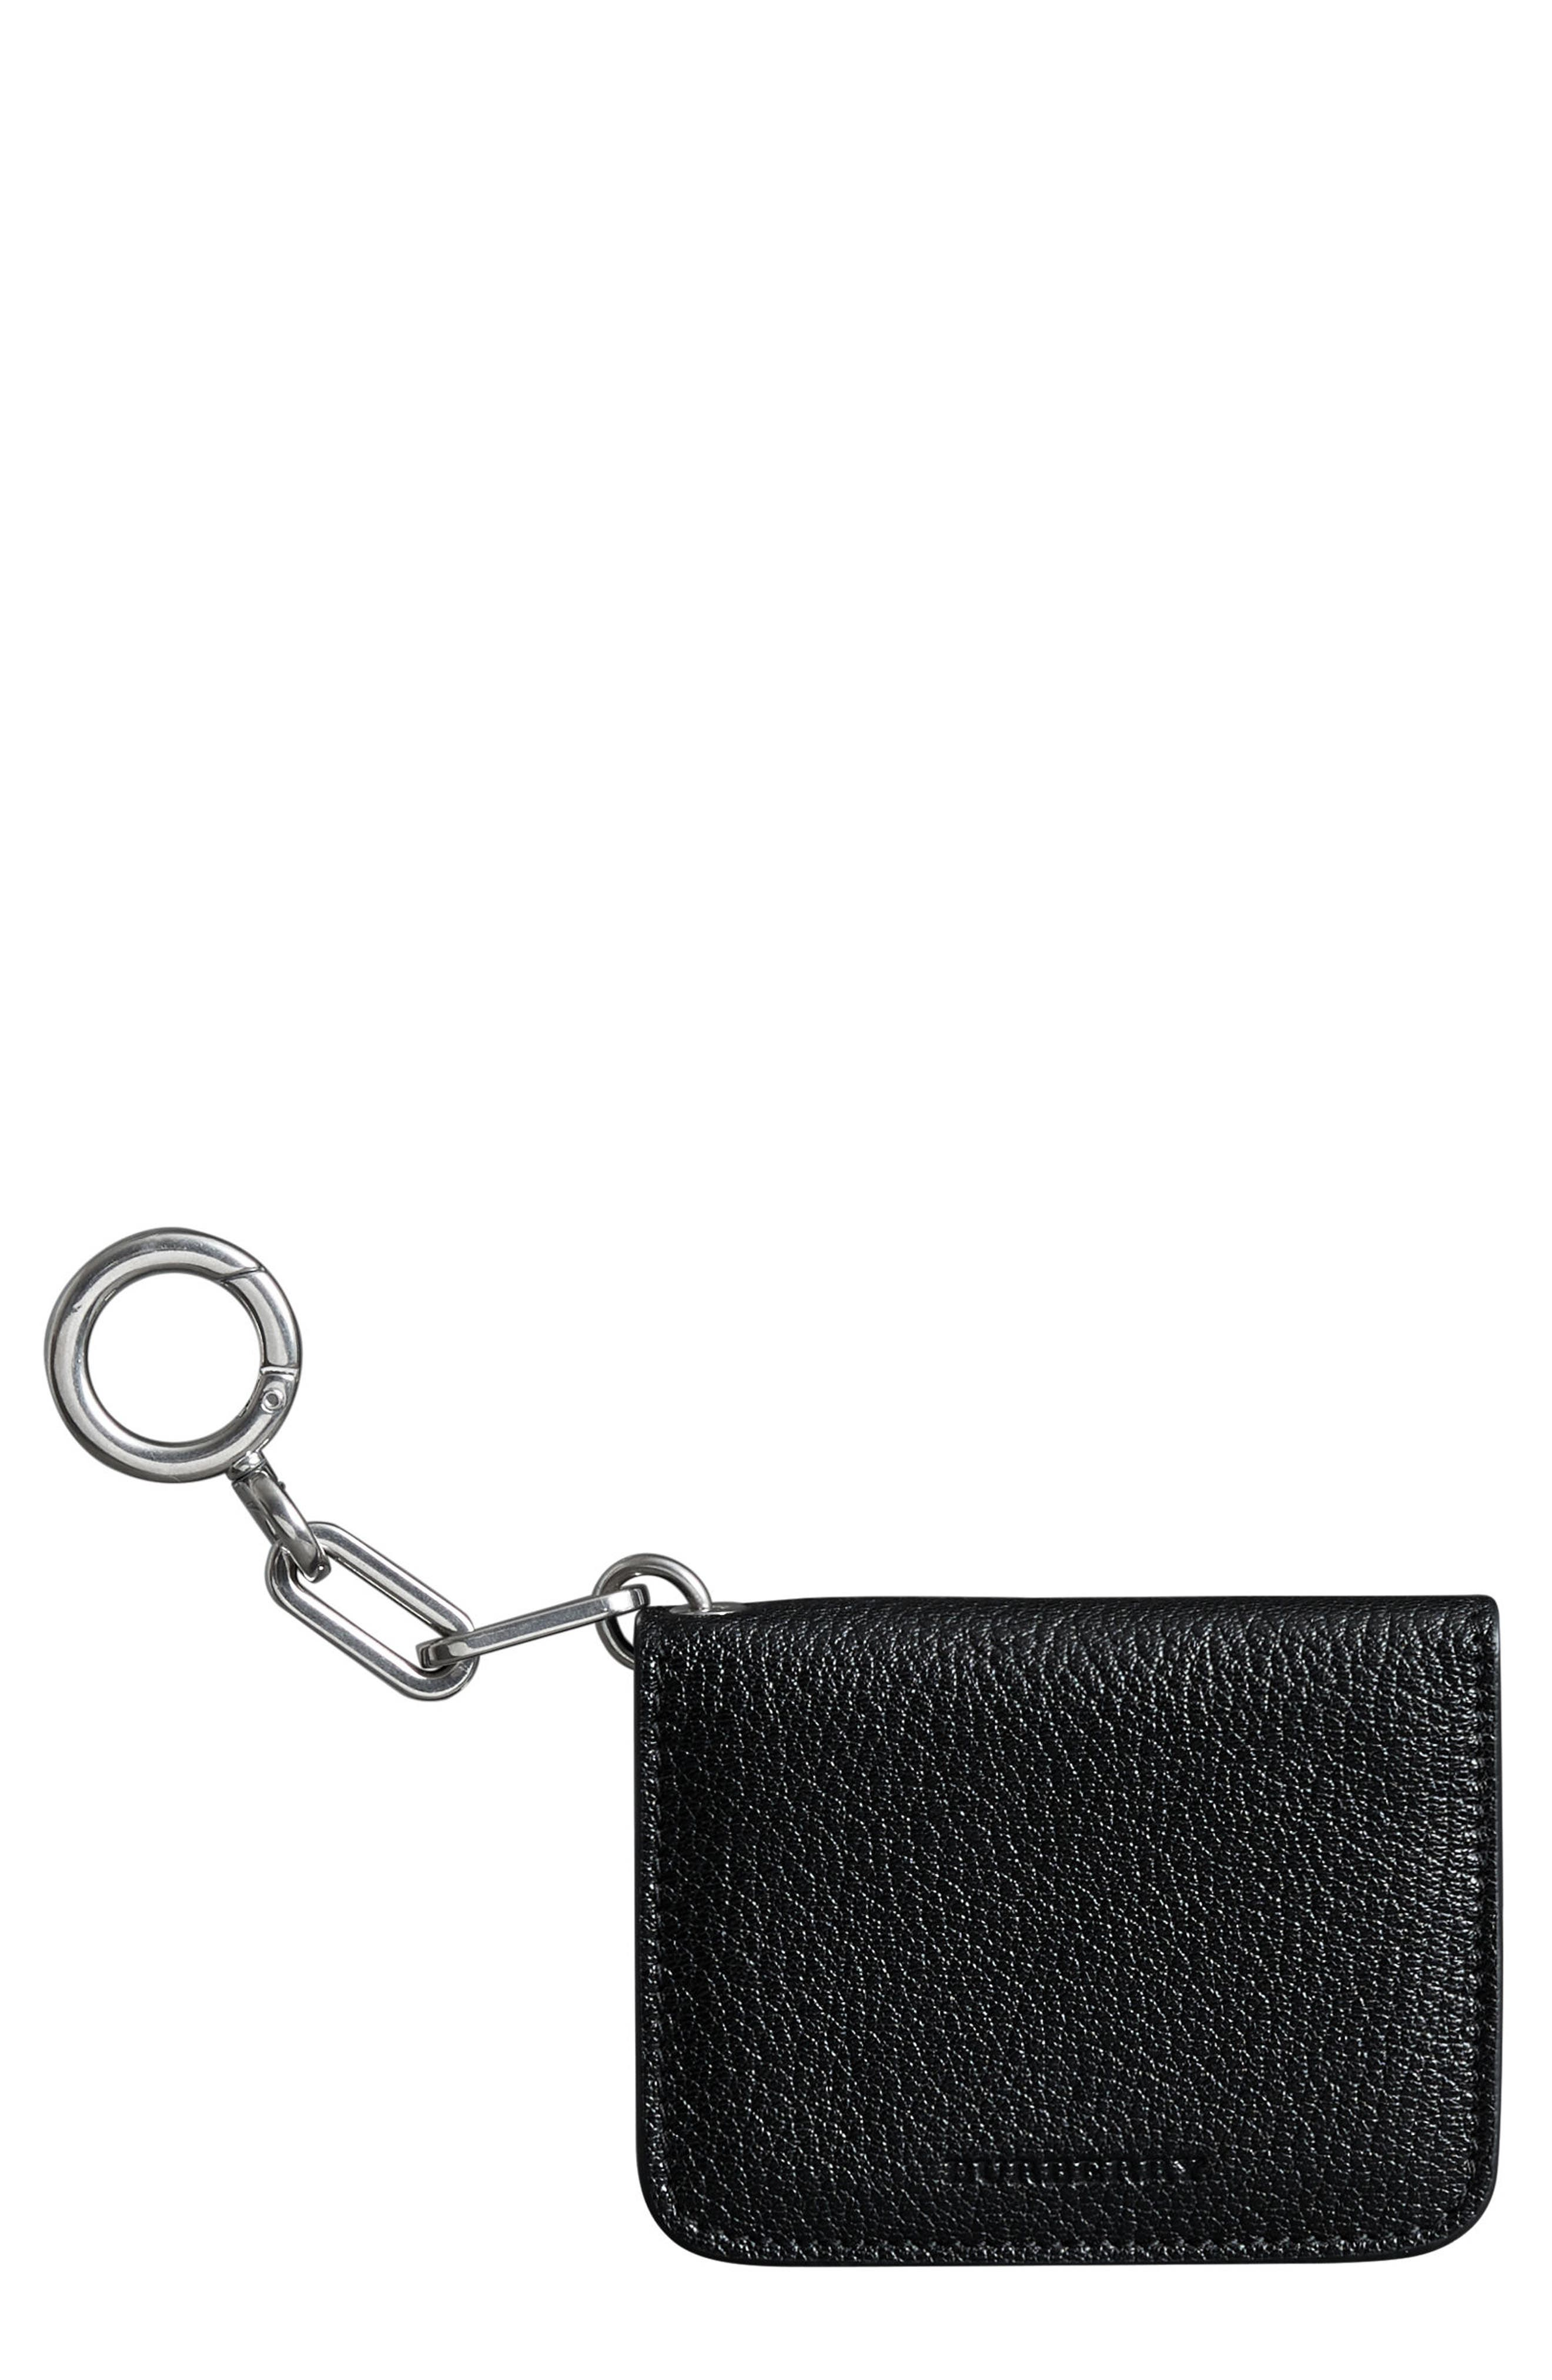 Camberwell Leather ID & Card Case,                             Main thumbnail 1, color,                             BLACK